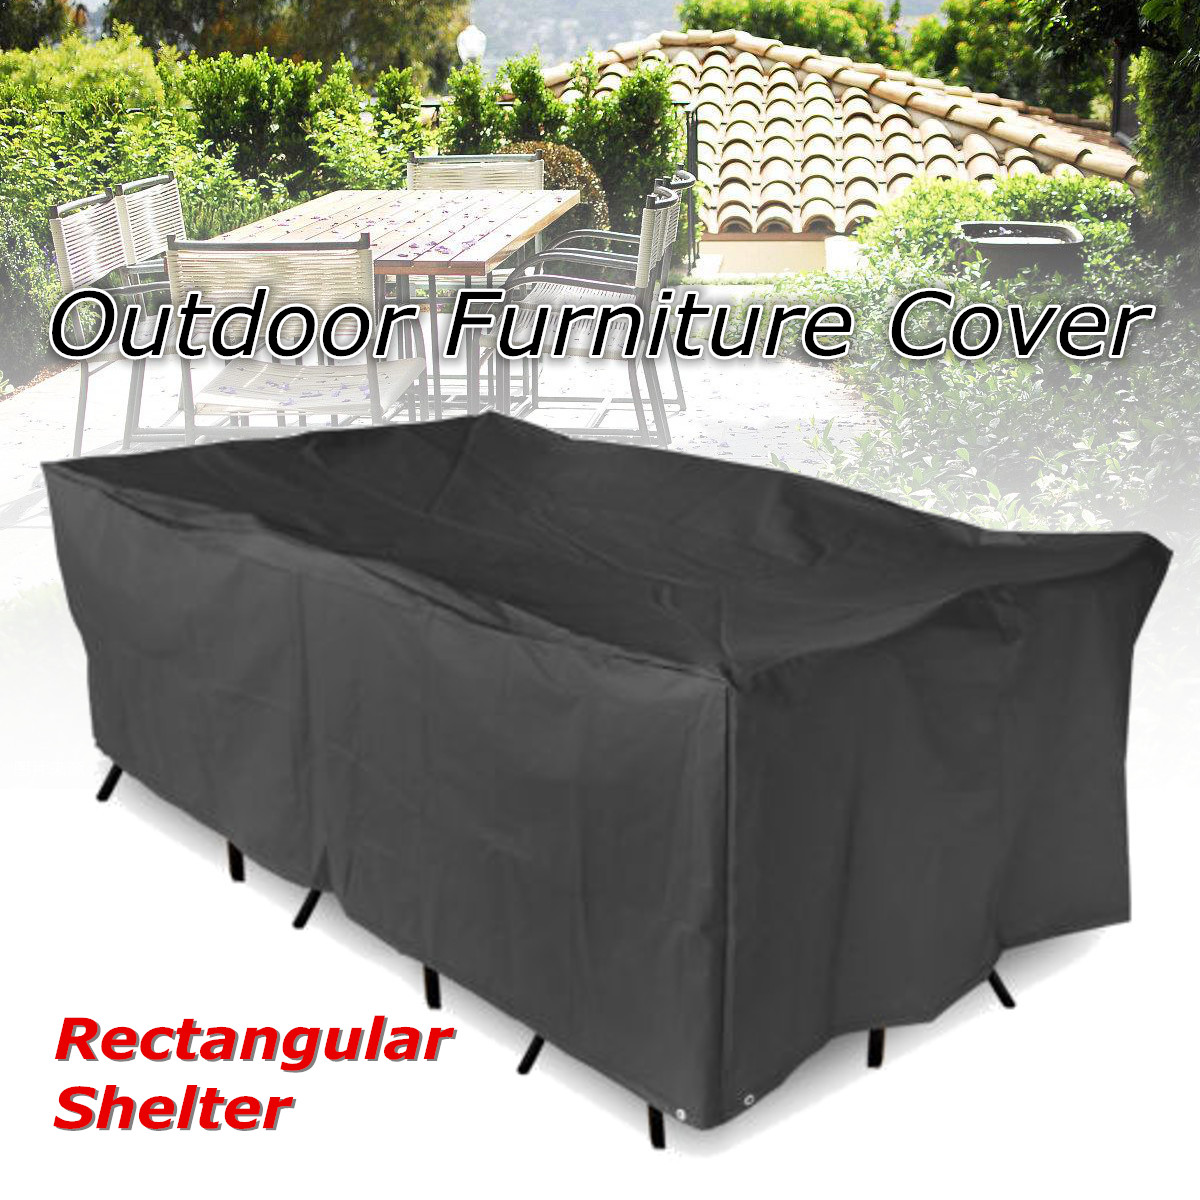 Wondrous Details About Varies Size Waterproof Furniture Cover Garden Table Chair Rectangular Protector Short Links Chair Design For Home Short Linksinfo